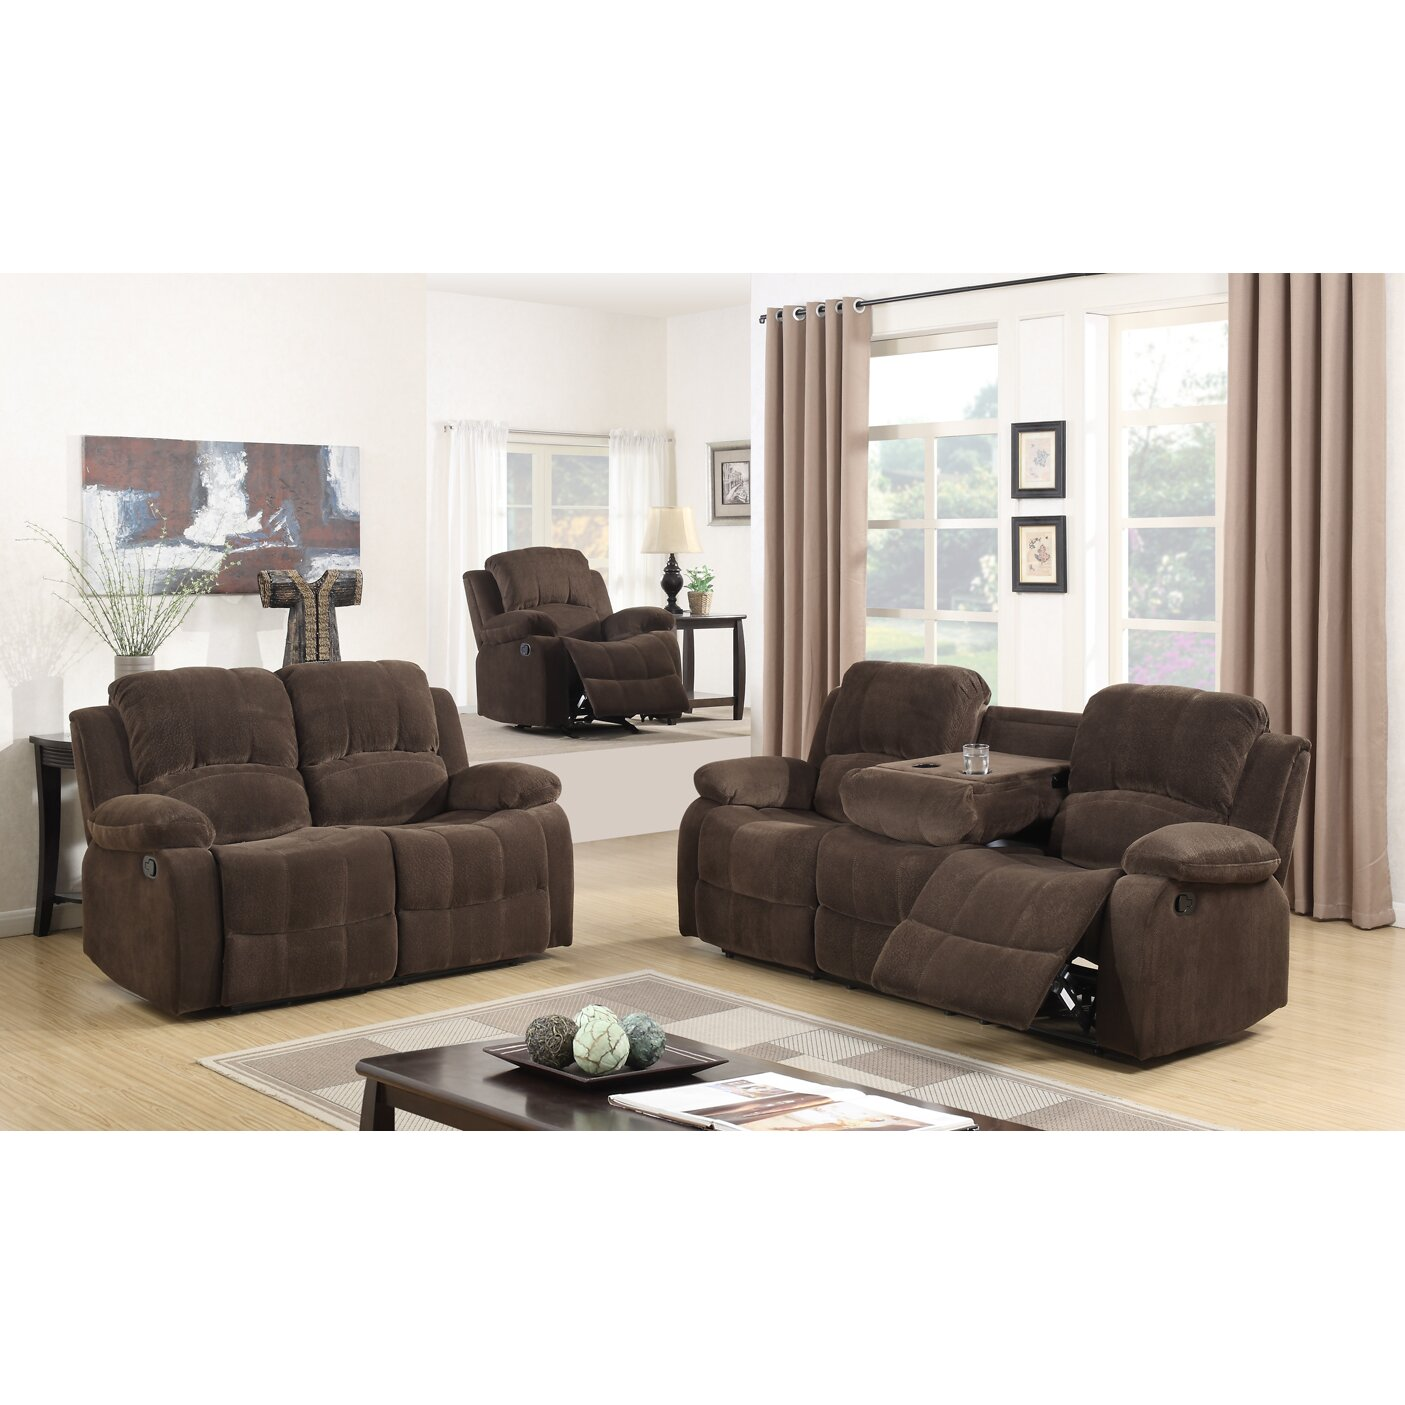 Best quality furniture fabric 3 piece recliner living room for Best quality furniture